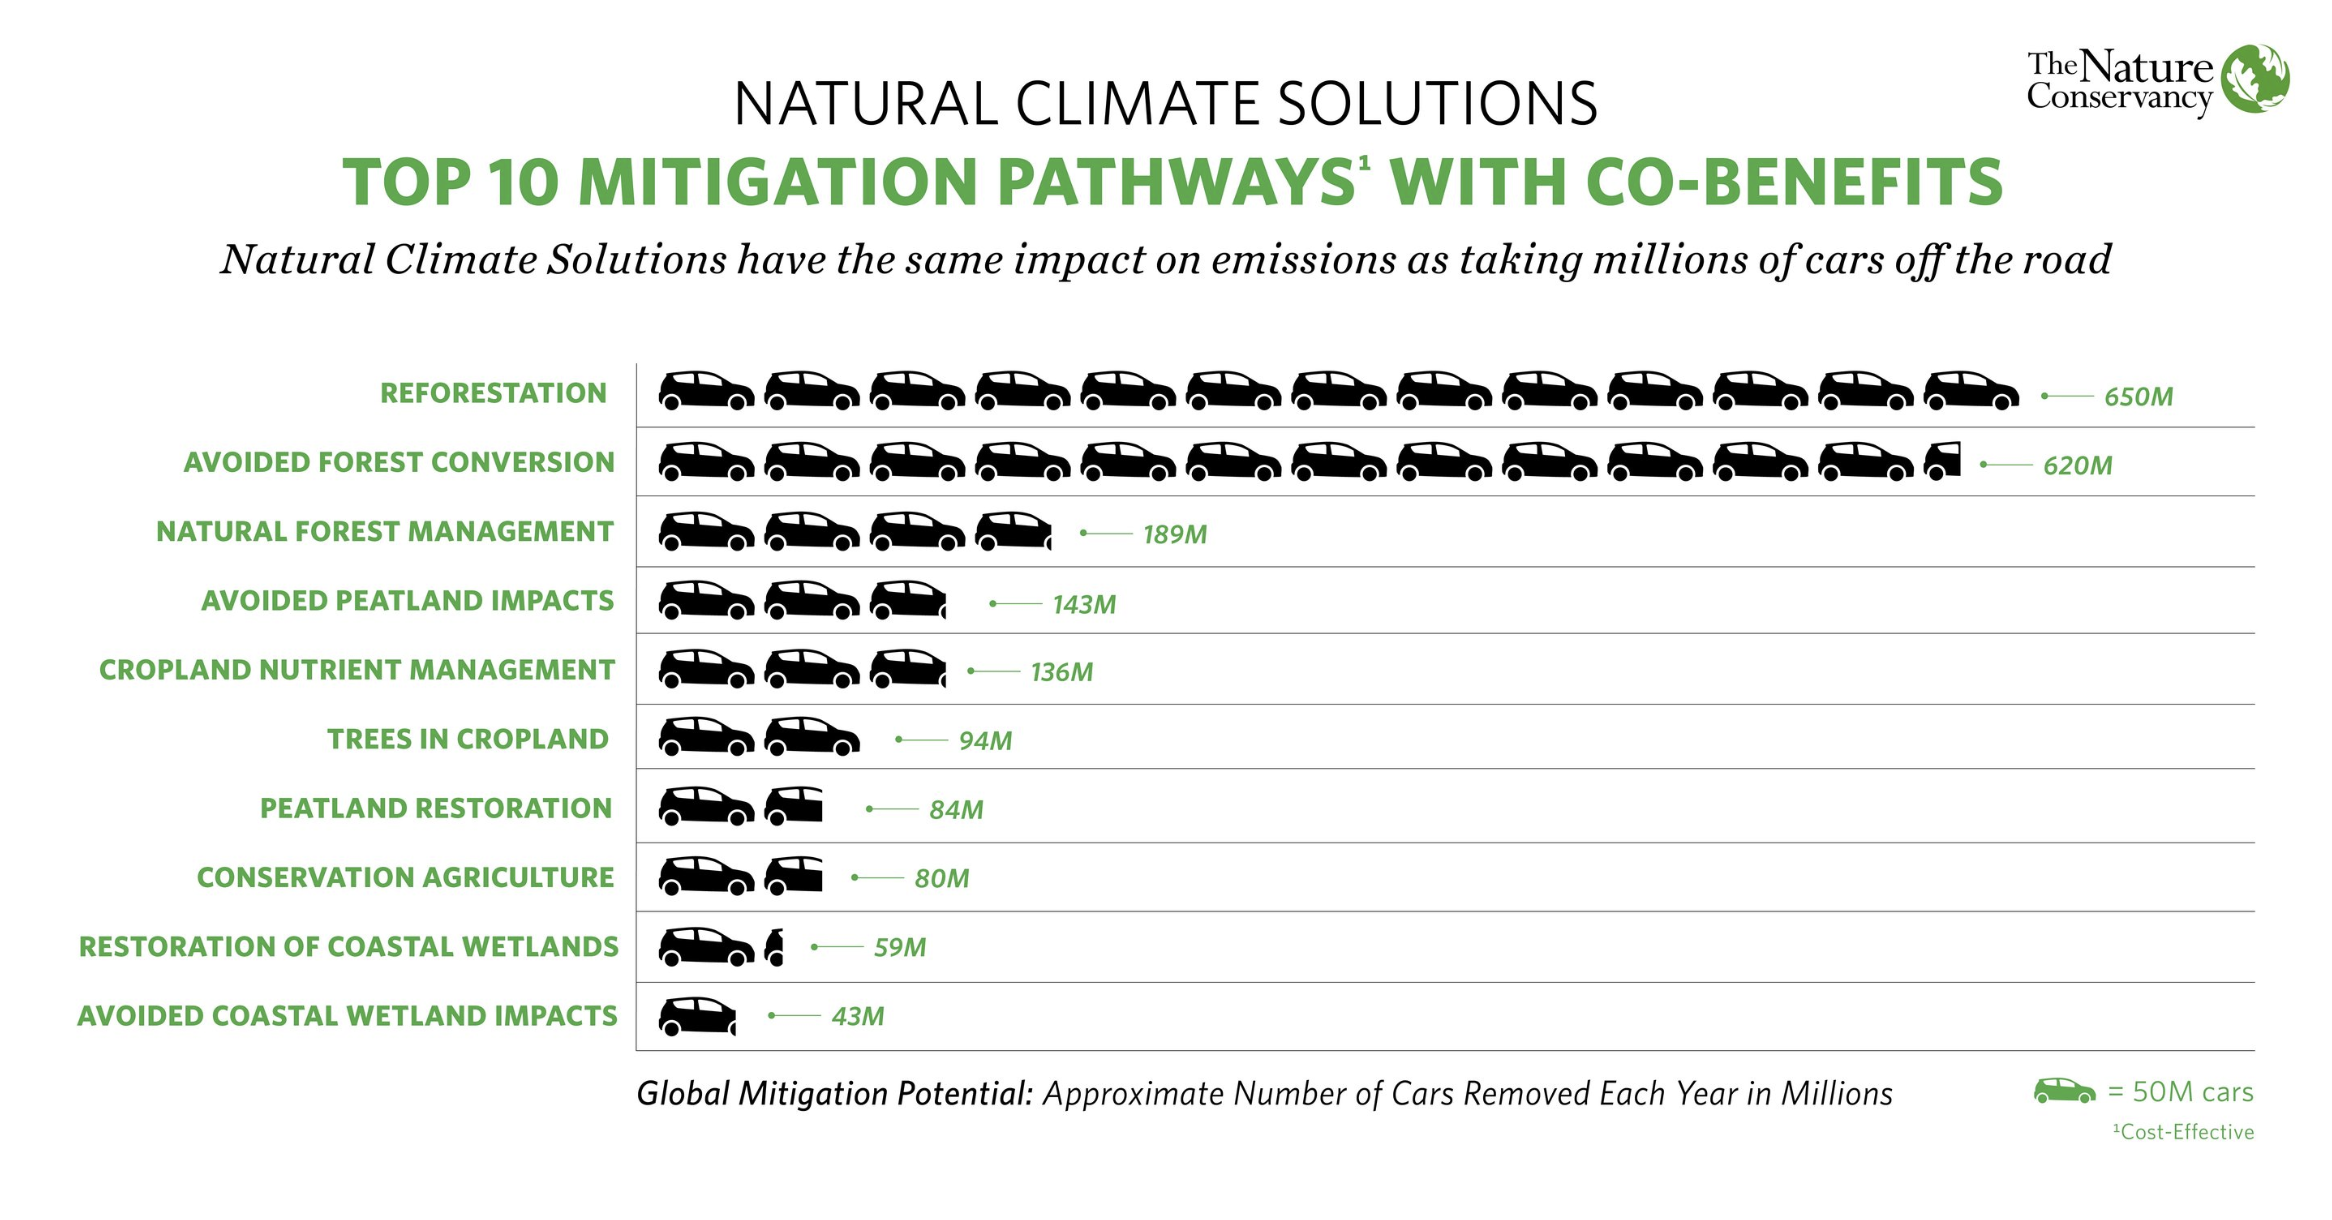 Natural climate solutions have a huge role to play in mitigating CO2 emissions